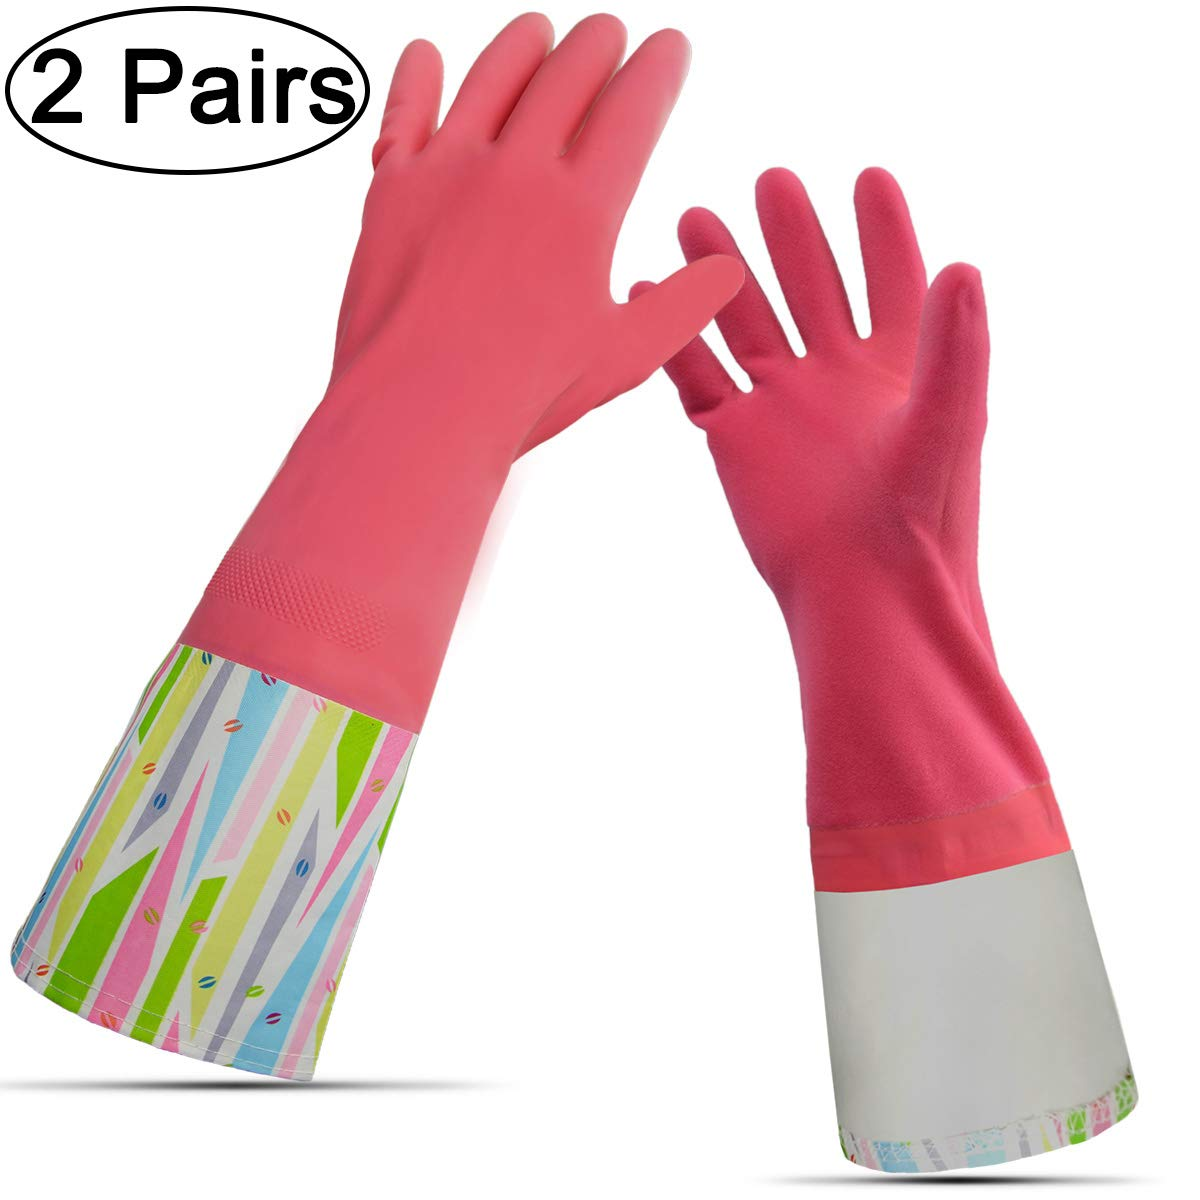 Rubber Household Gloves, Reusable Long Latex Kitchen Cleaning Gloves, with Cotton Lining (Pink 2 Pairs) by Cleanbear (Image #6)